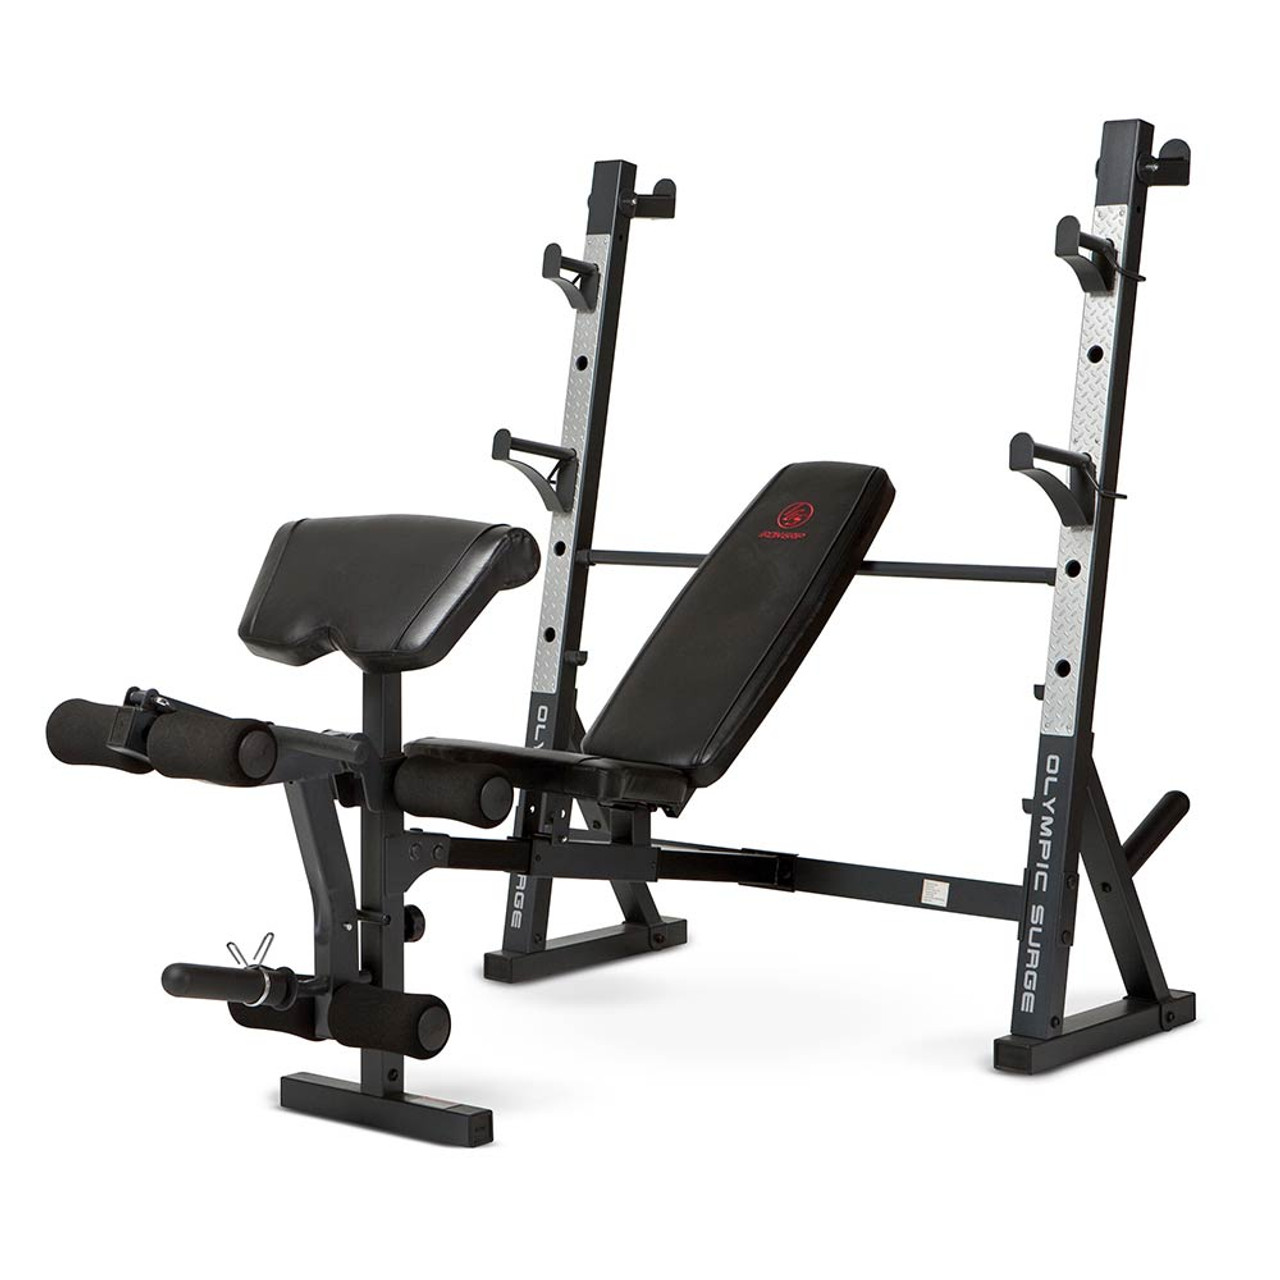 benches flat ymca weight equipment storage olympic rack weights kishwaukee new bench family with free